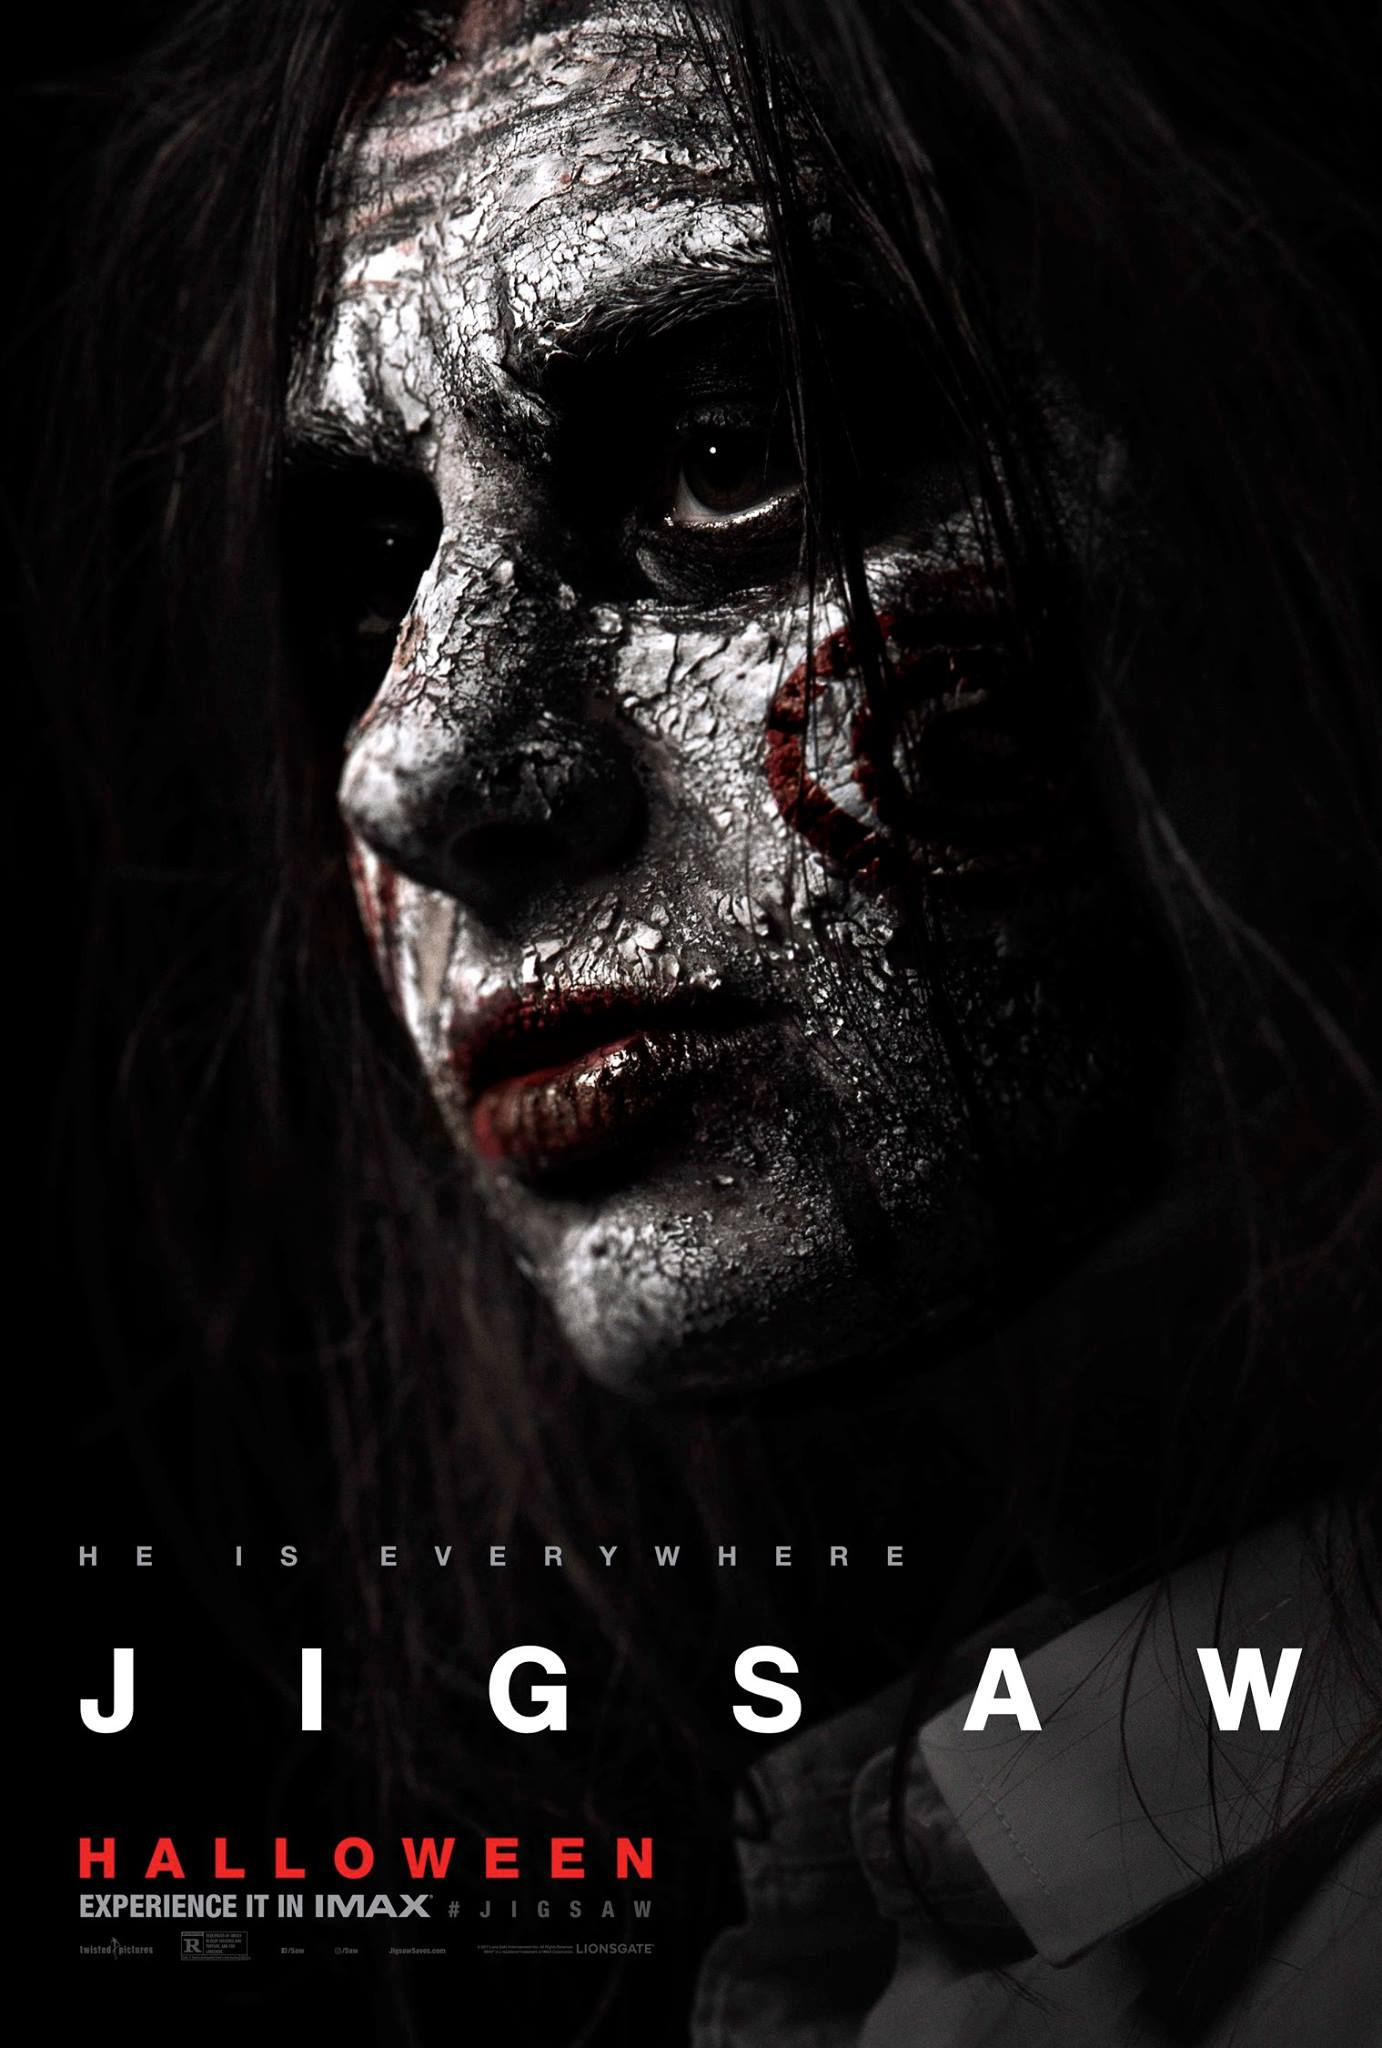 jigsaw movie character posters teaser trailer